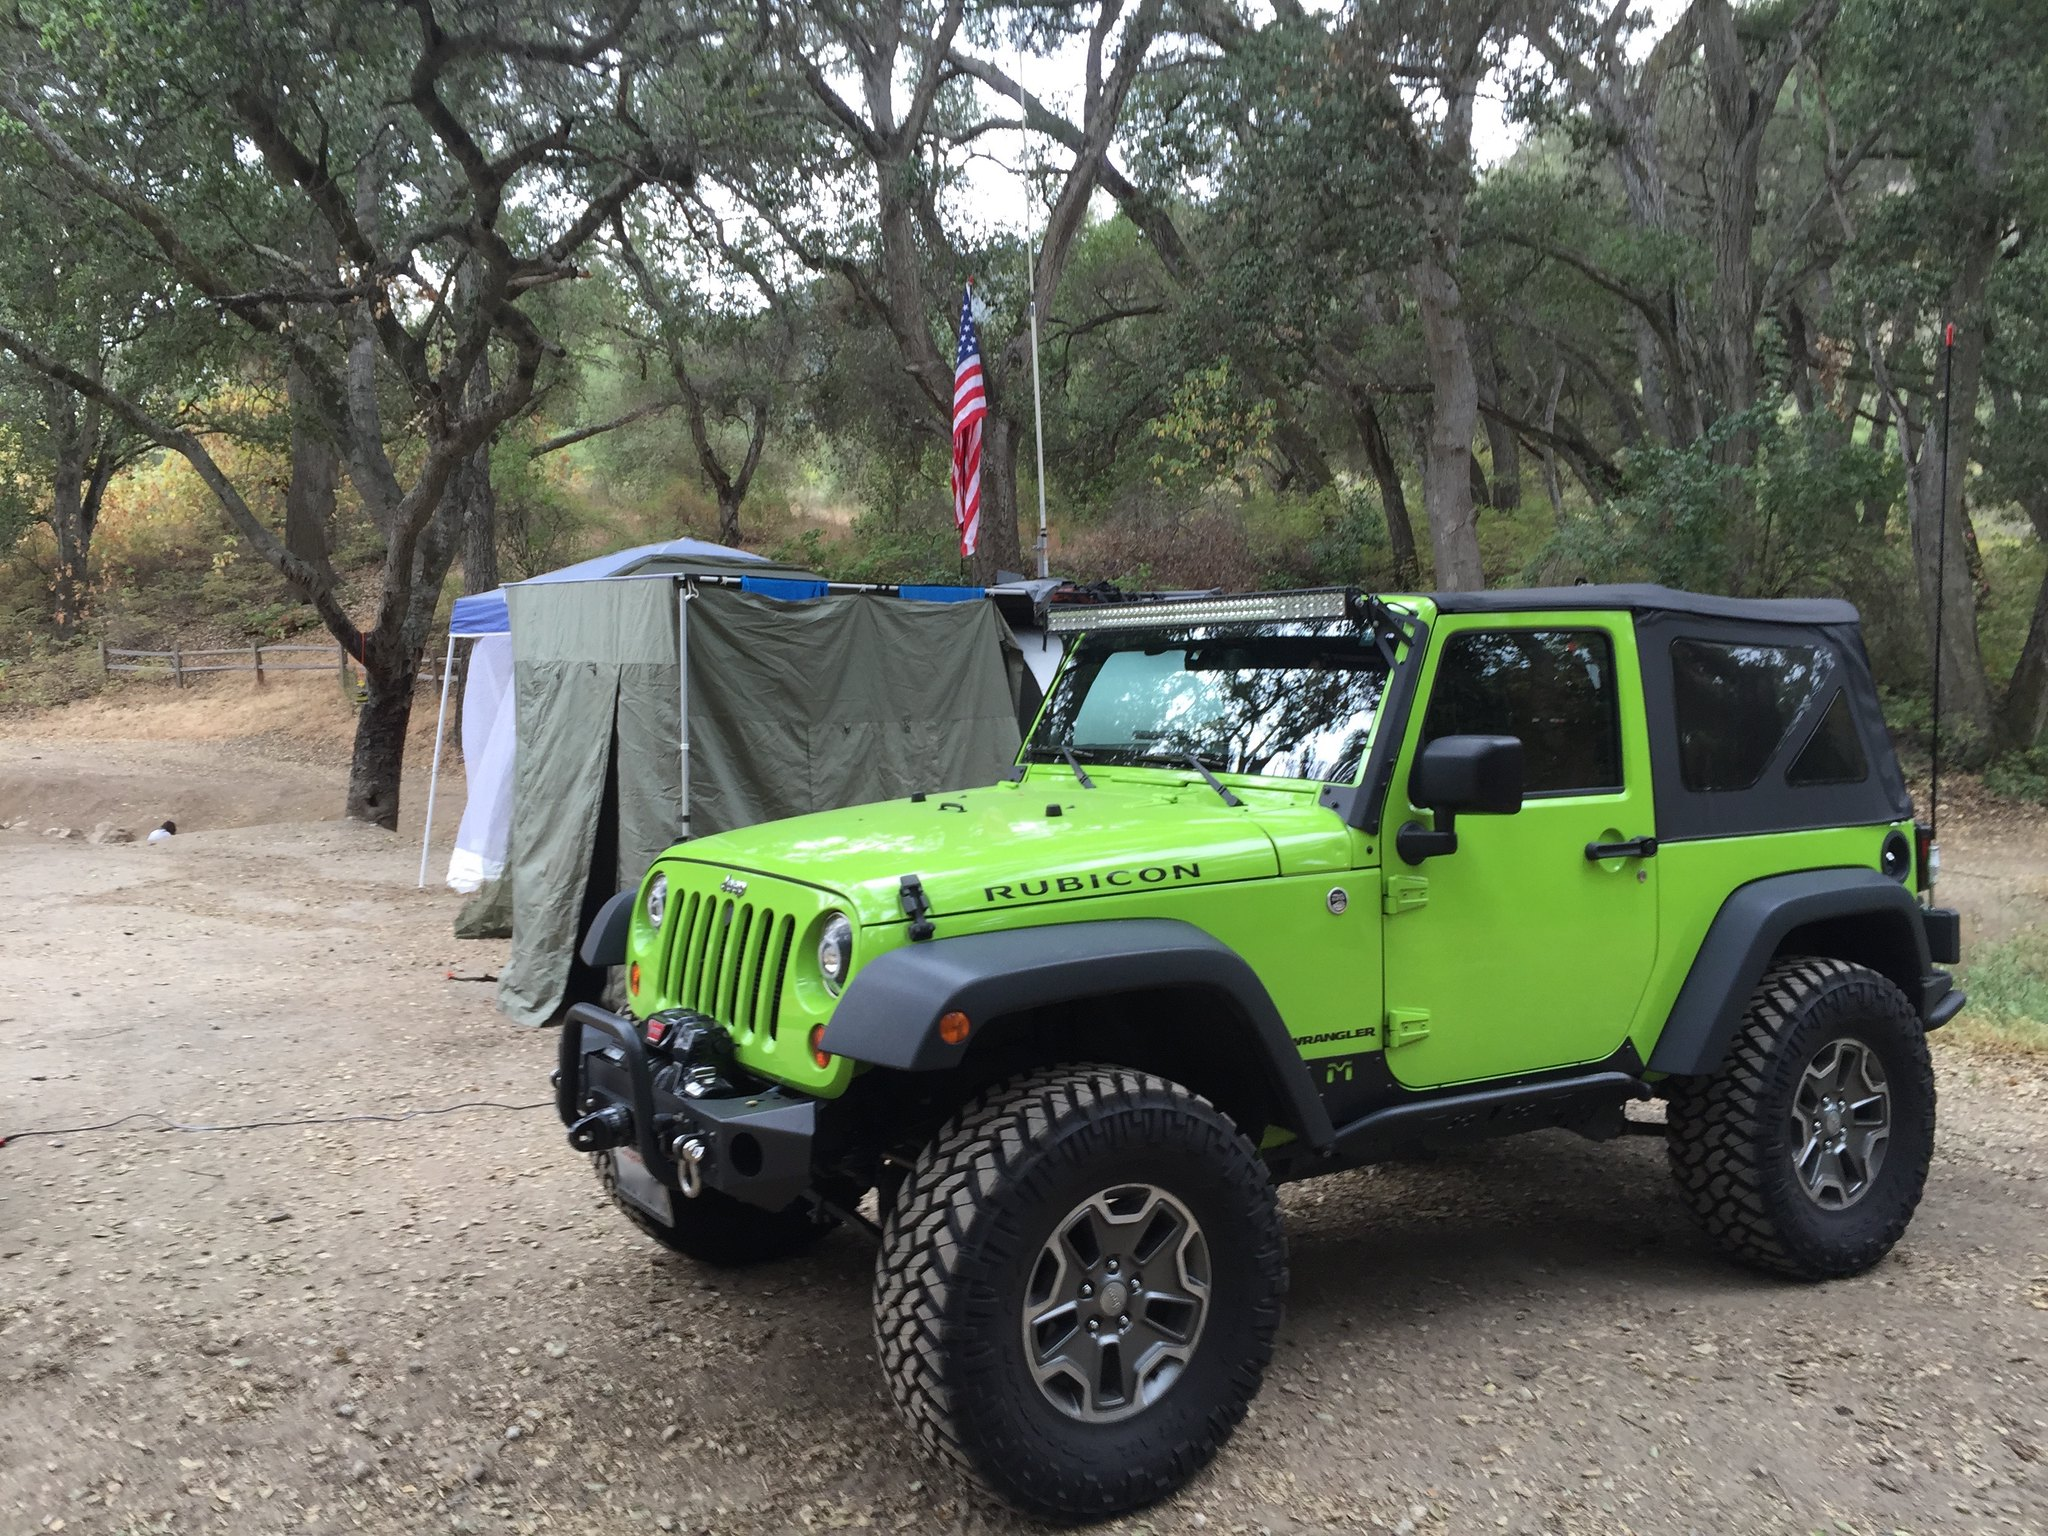 jeep wrangler near me with Metalcloak Lift 1405802 on Used Jeep For Sale Special Offers Edmunds together with Wrangler Jeep Engine Mods Impact together with Plus Size Bikini Top in addition 2015 furthermore World Map Showing West Africa.